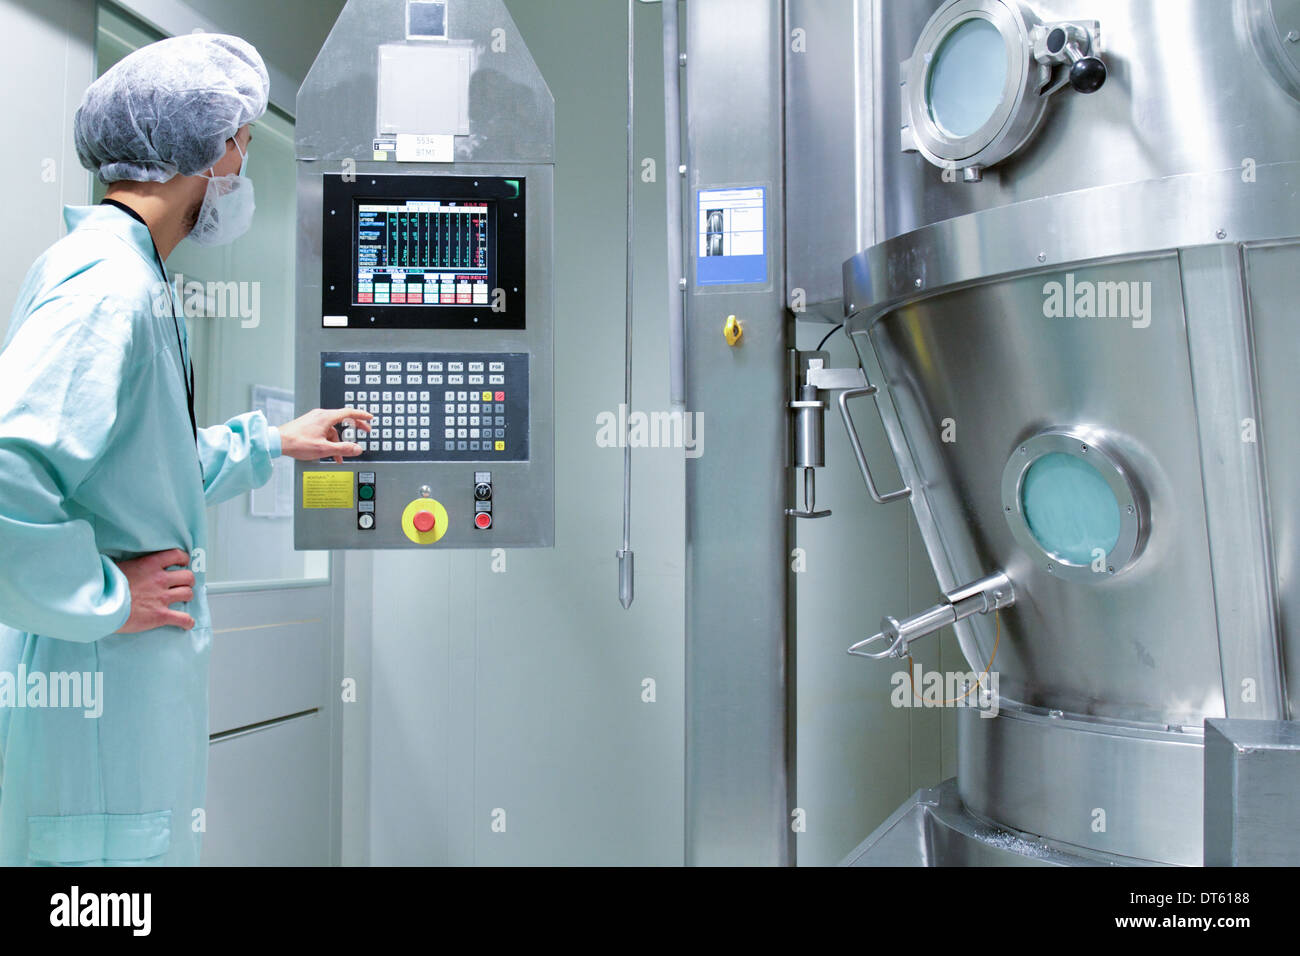 Laboratory technician checking and adjusting equipment reading - Stock Image